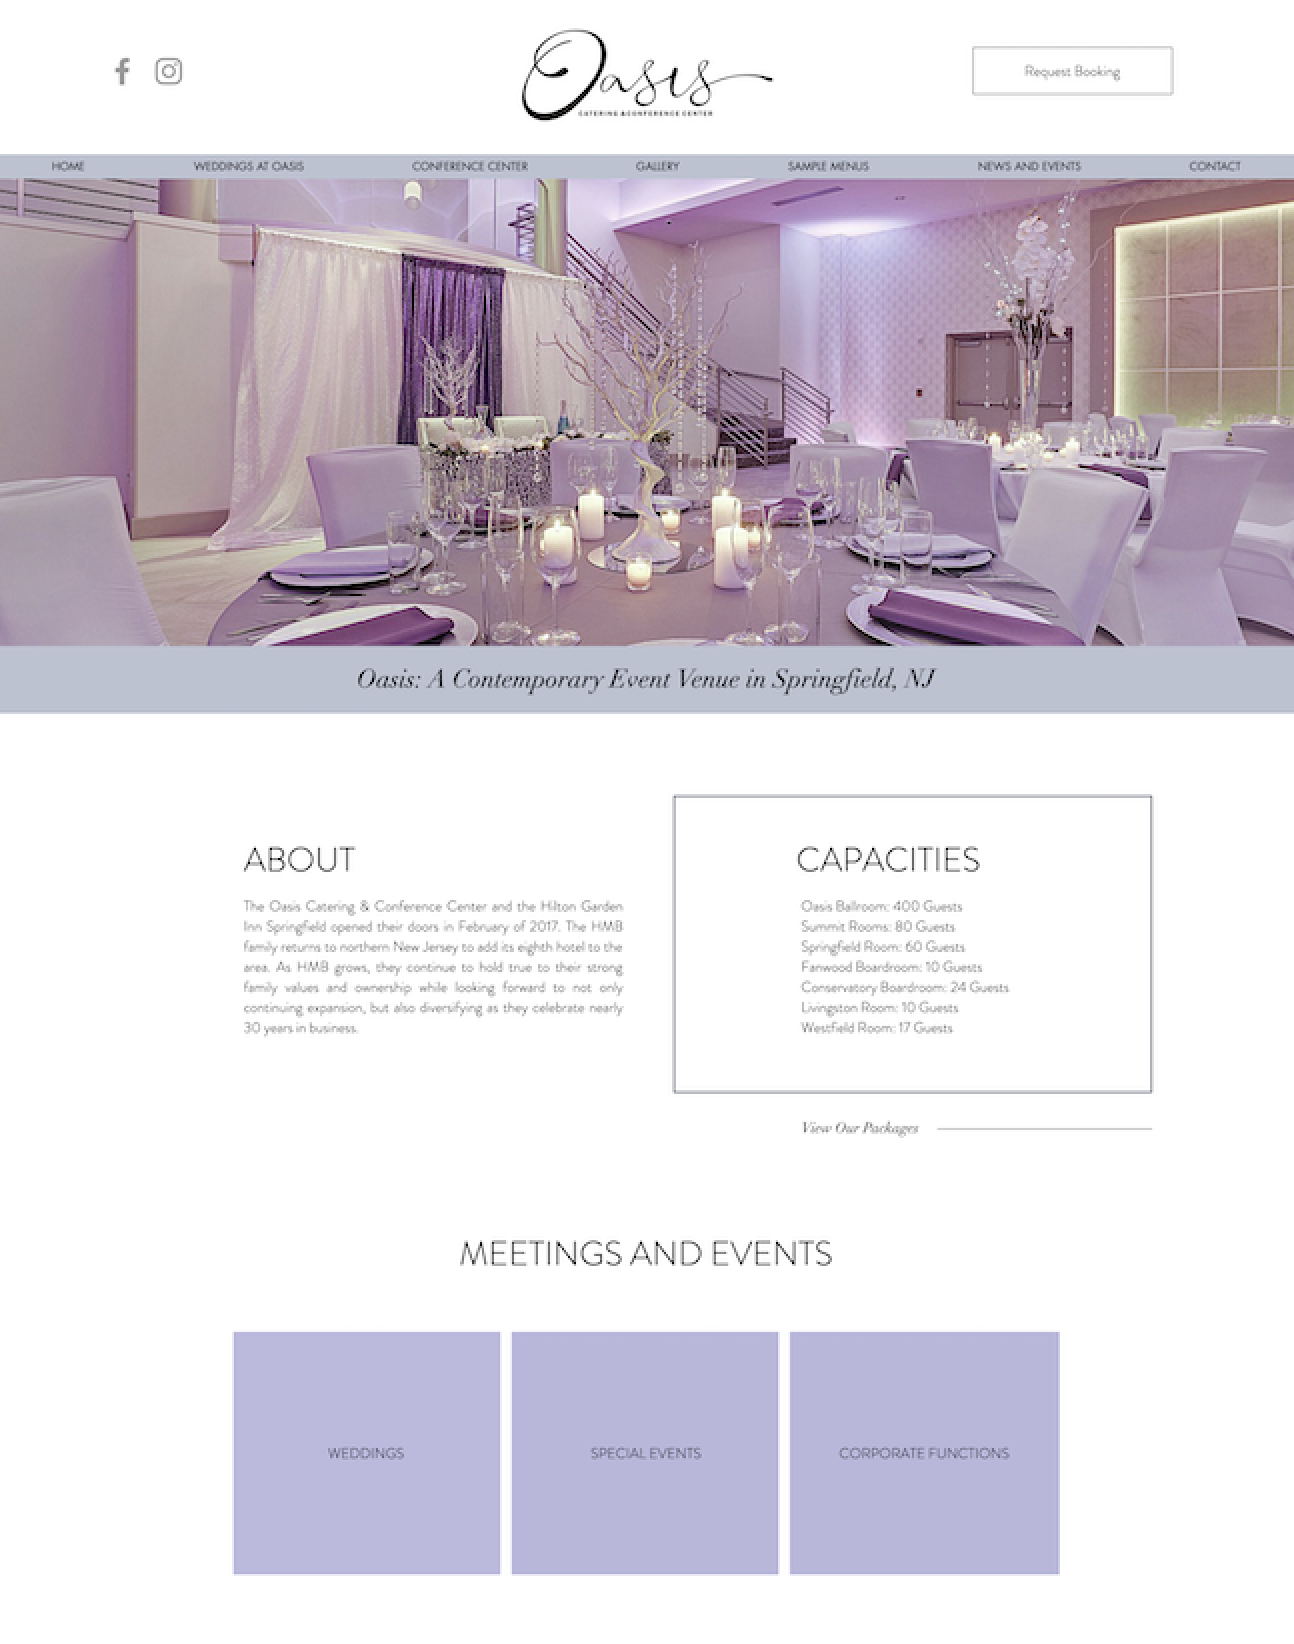 Oasis Event Center Website Design